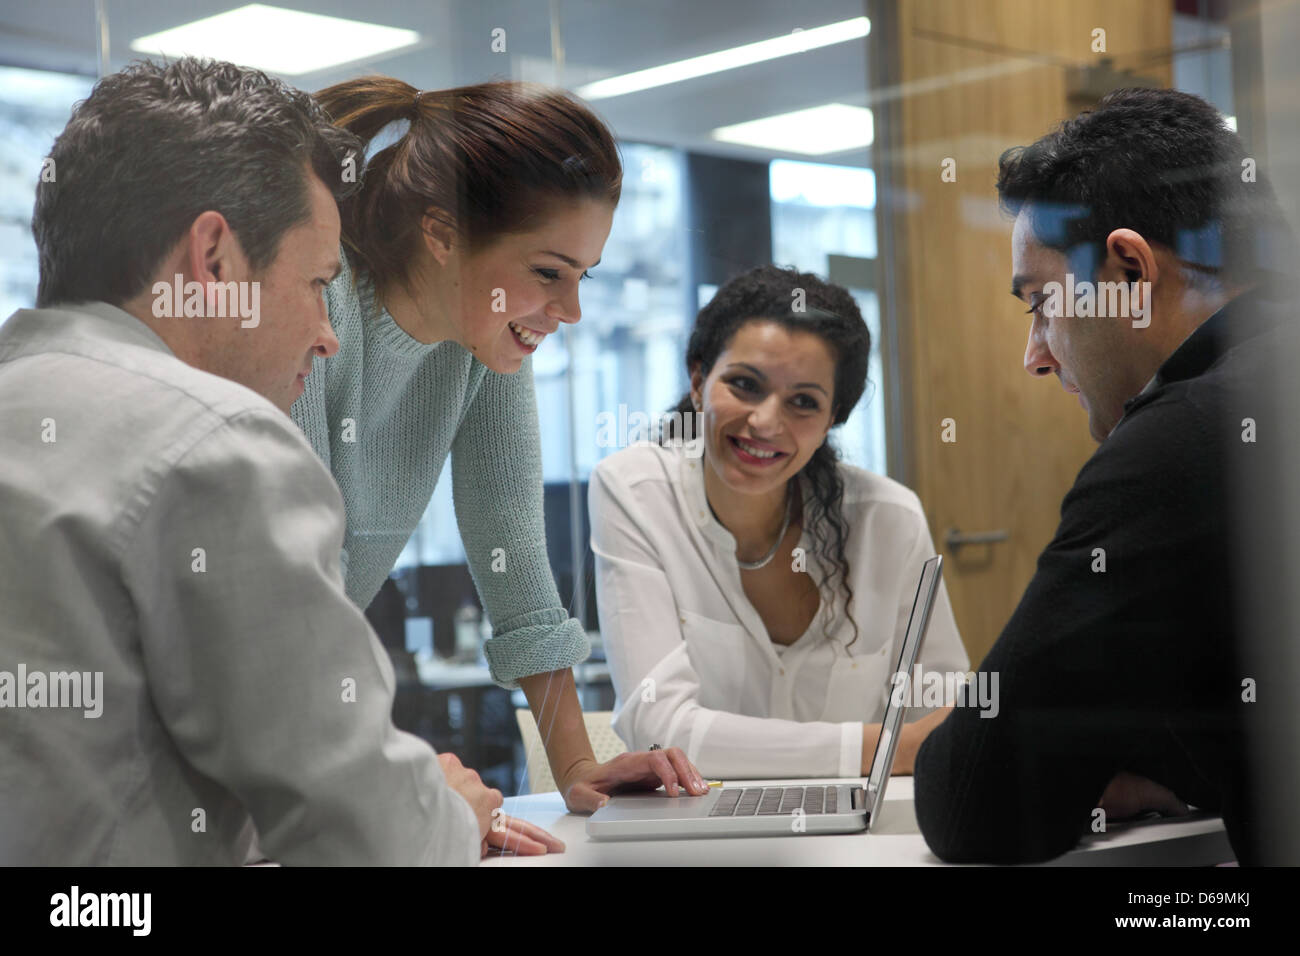 Business people using laptop in meeting Photo Stock